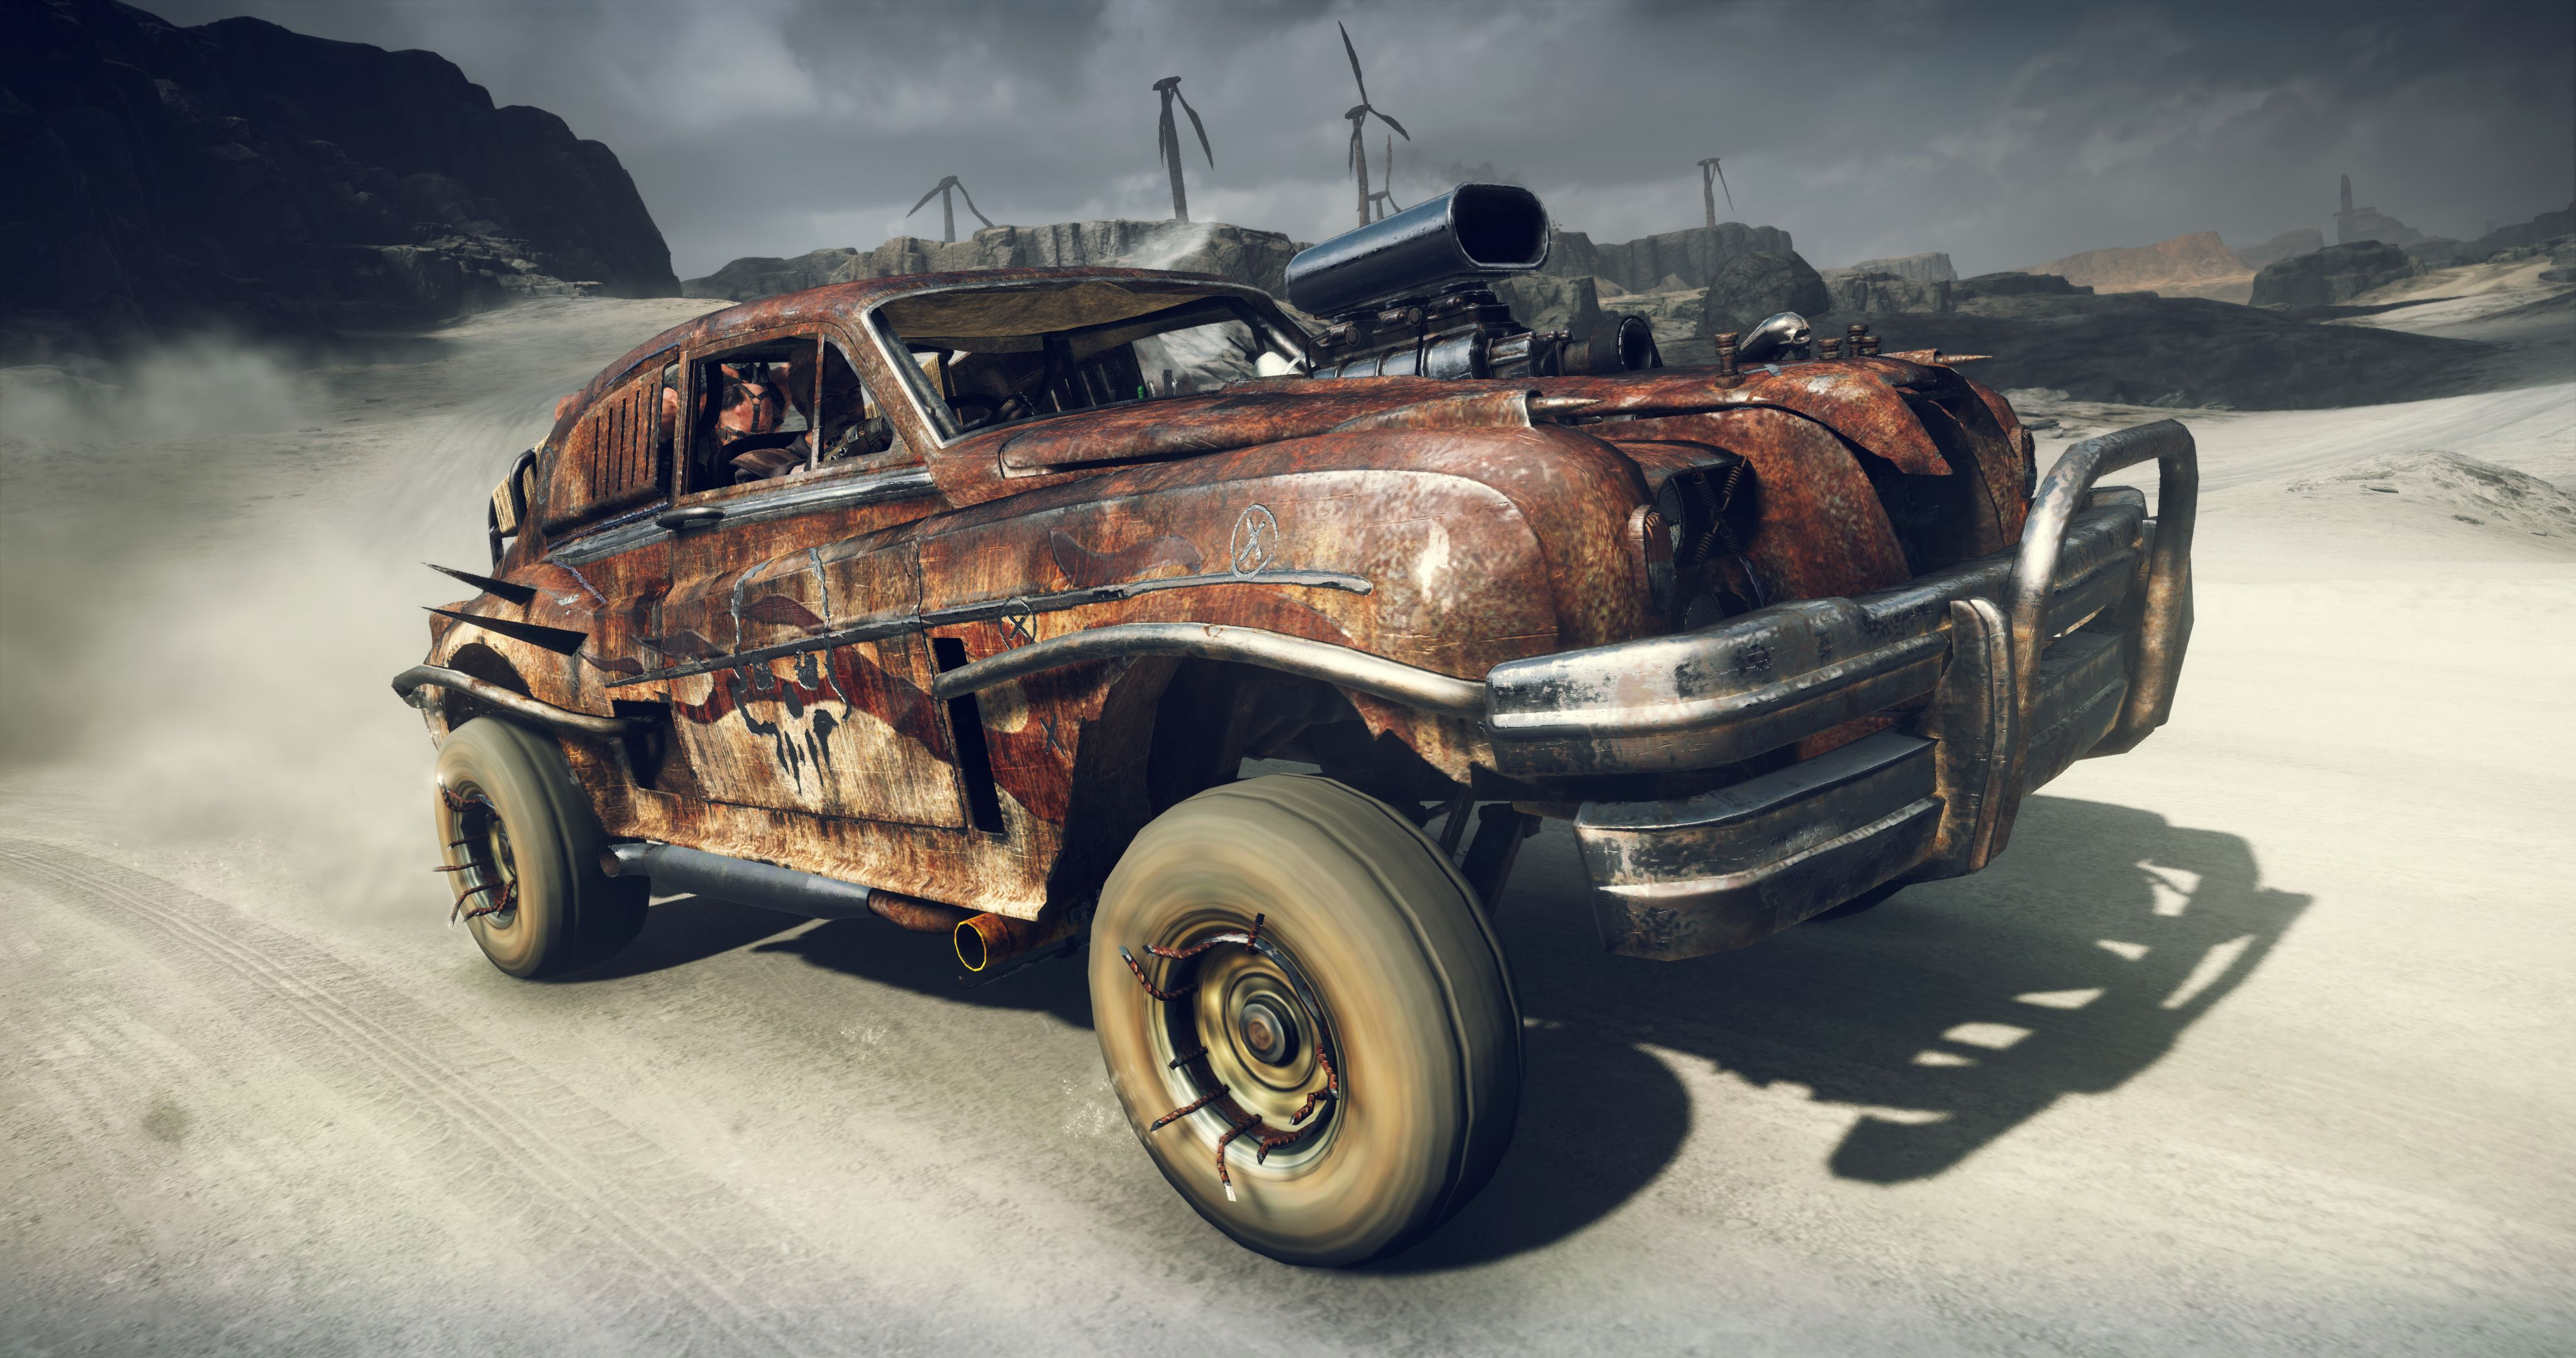 mad max vehicles - Google Search